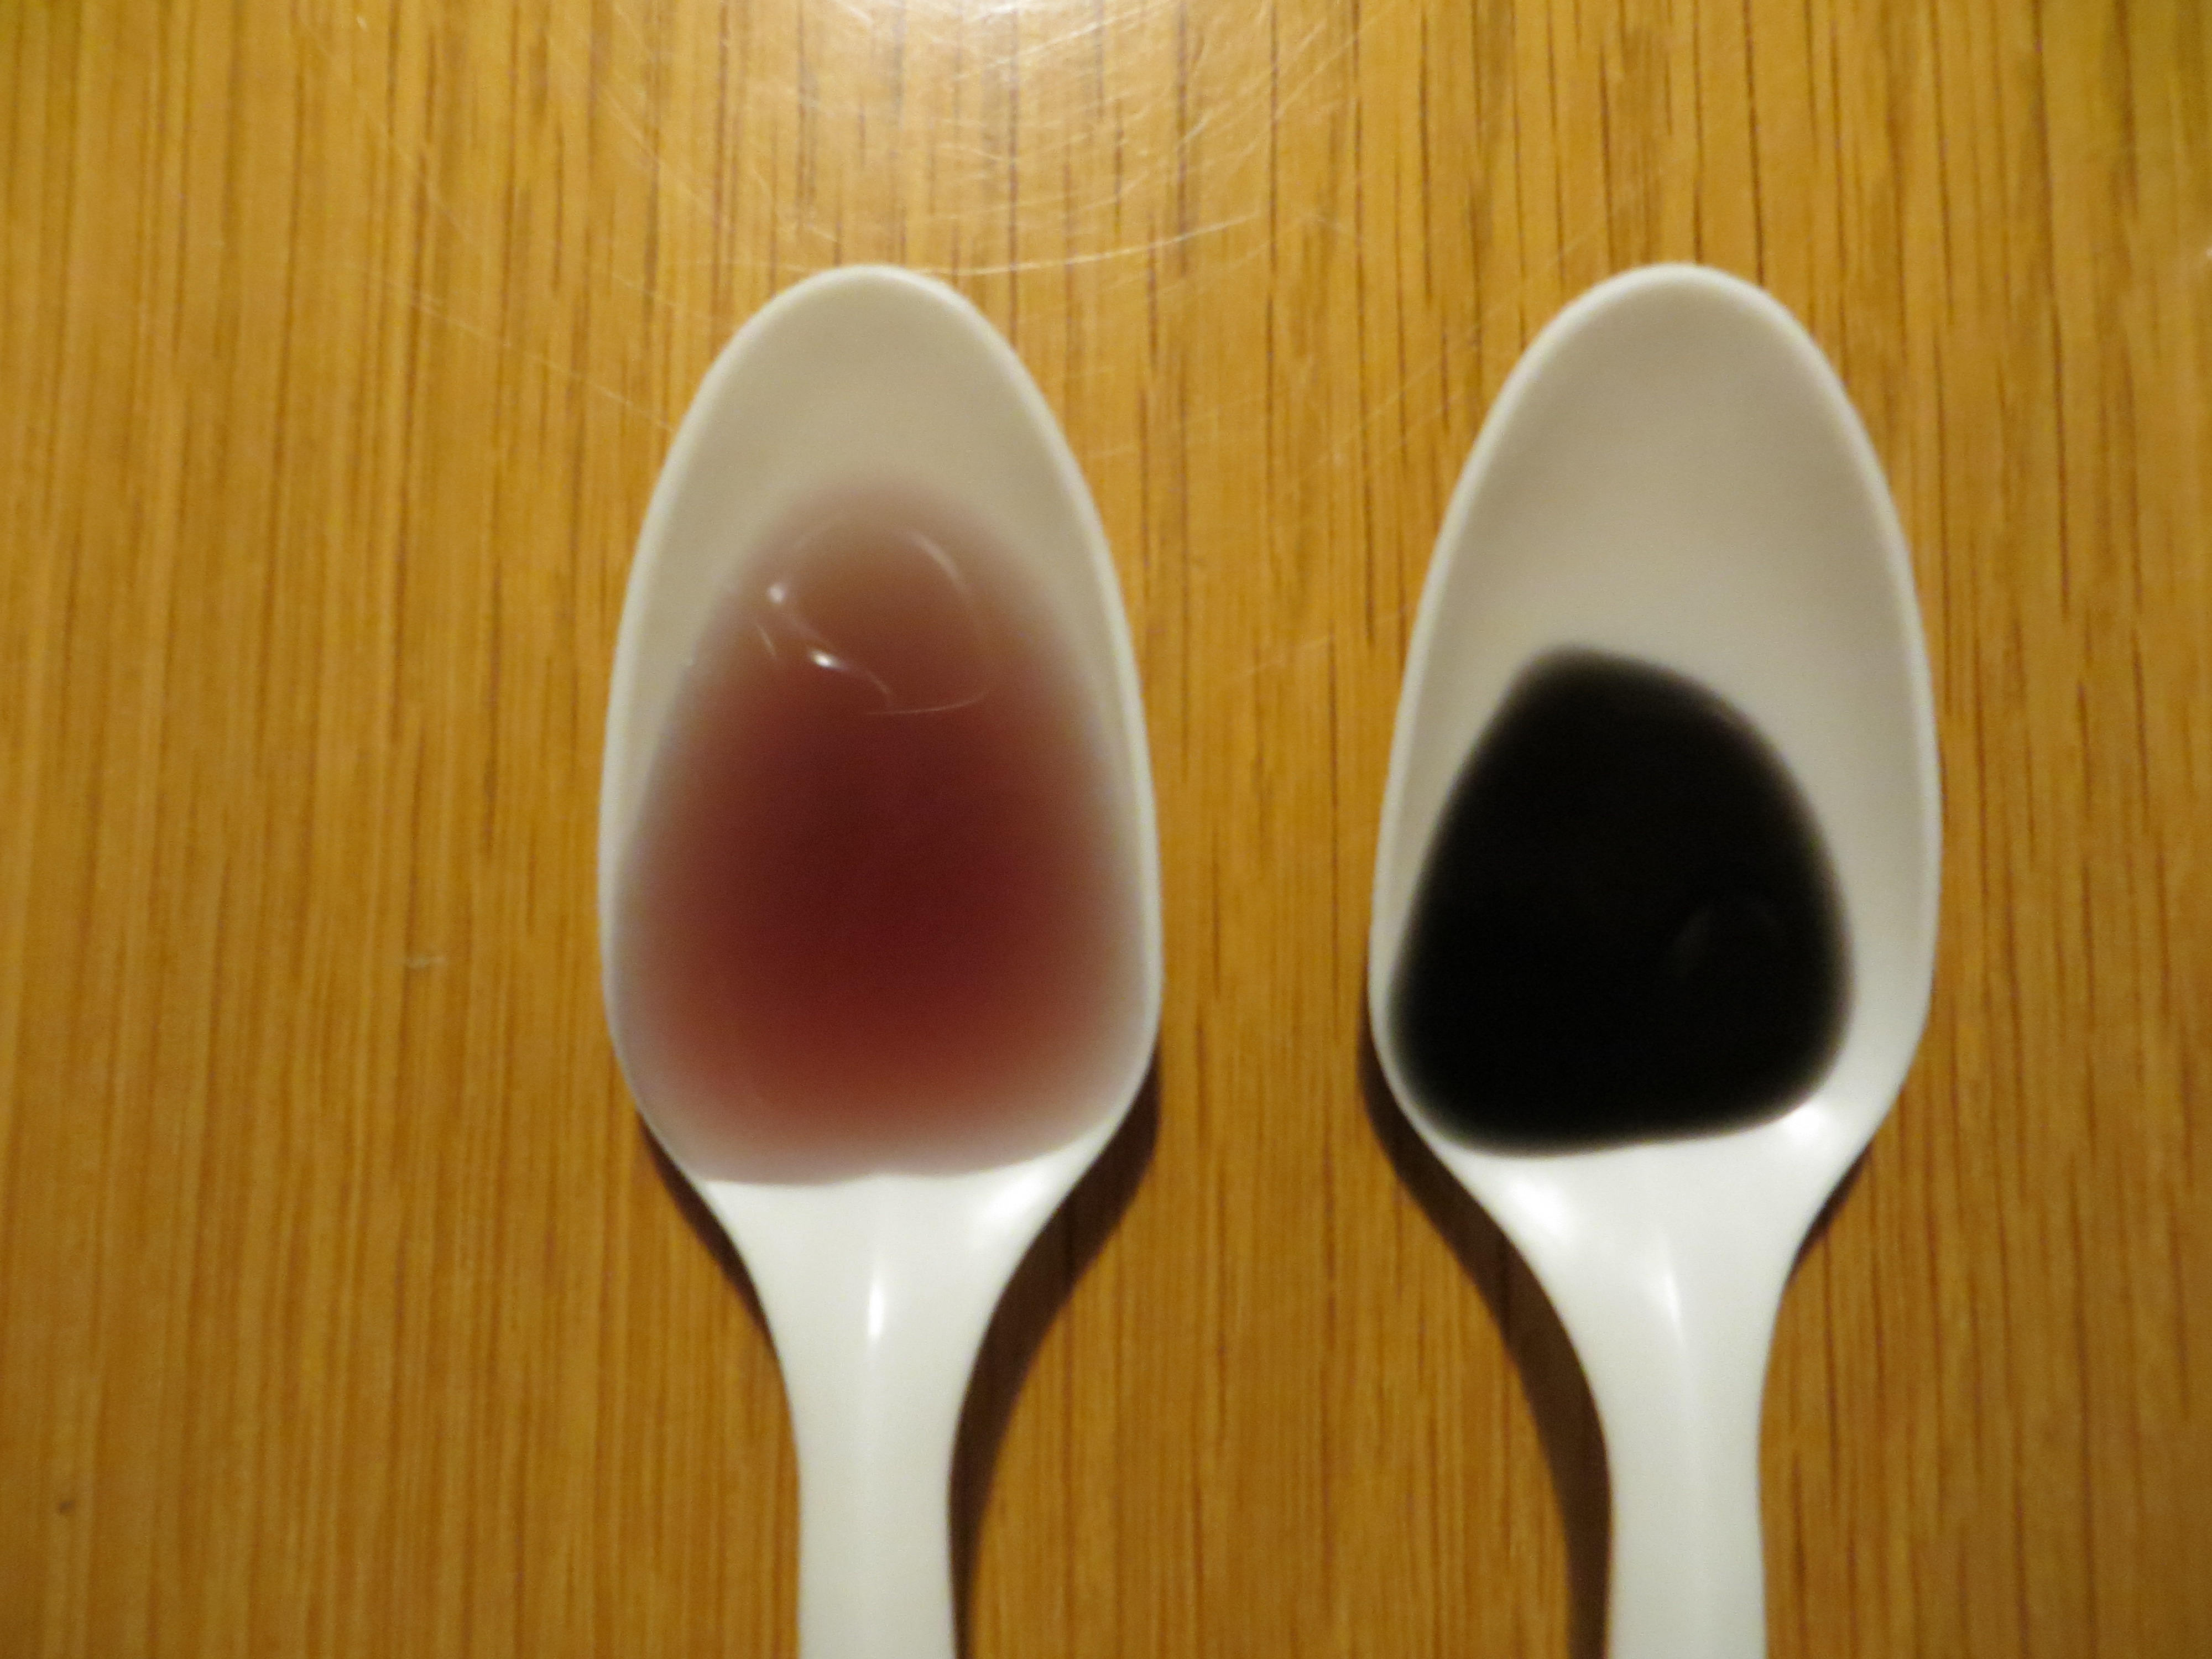 colors-on-white-spoon.jpg